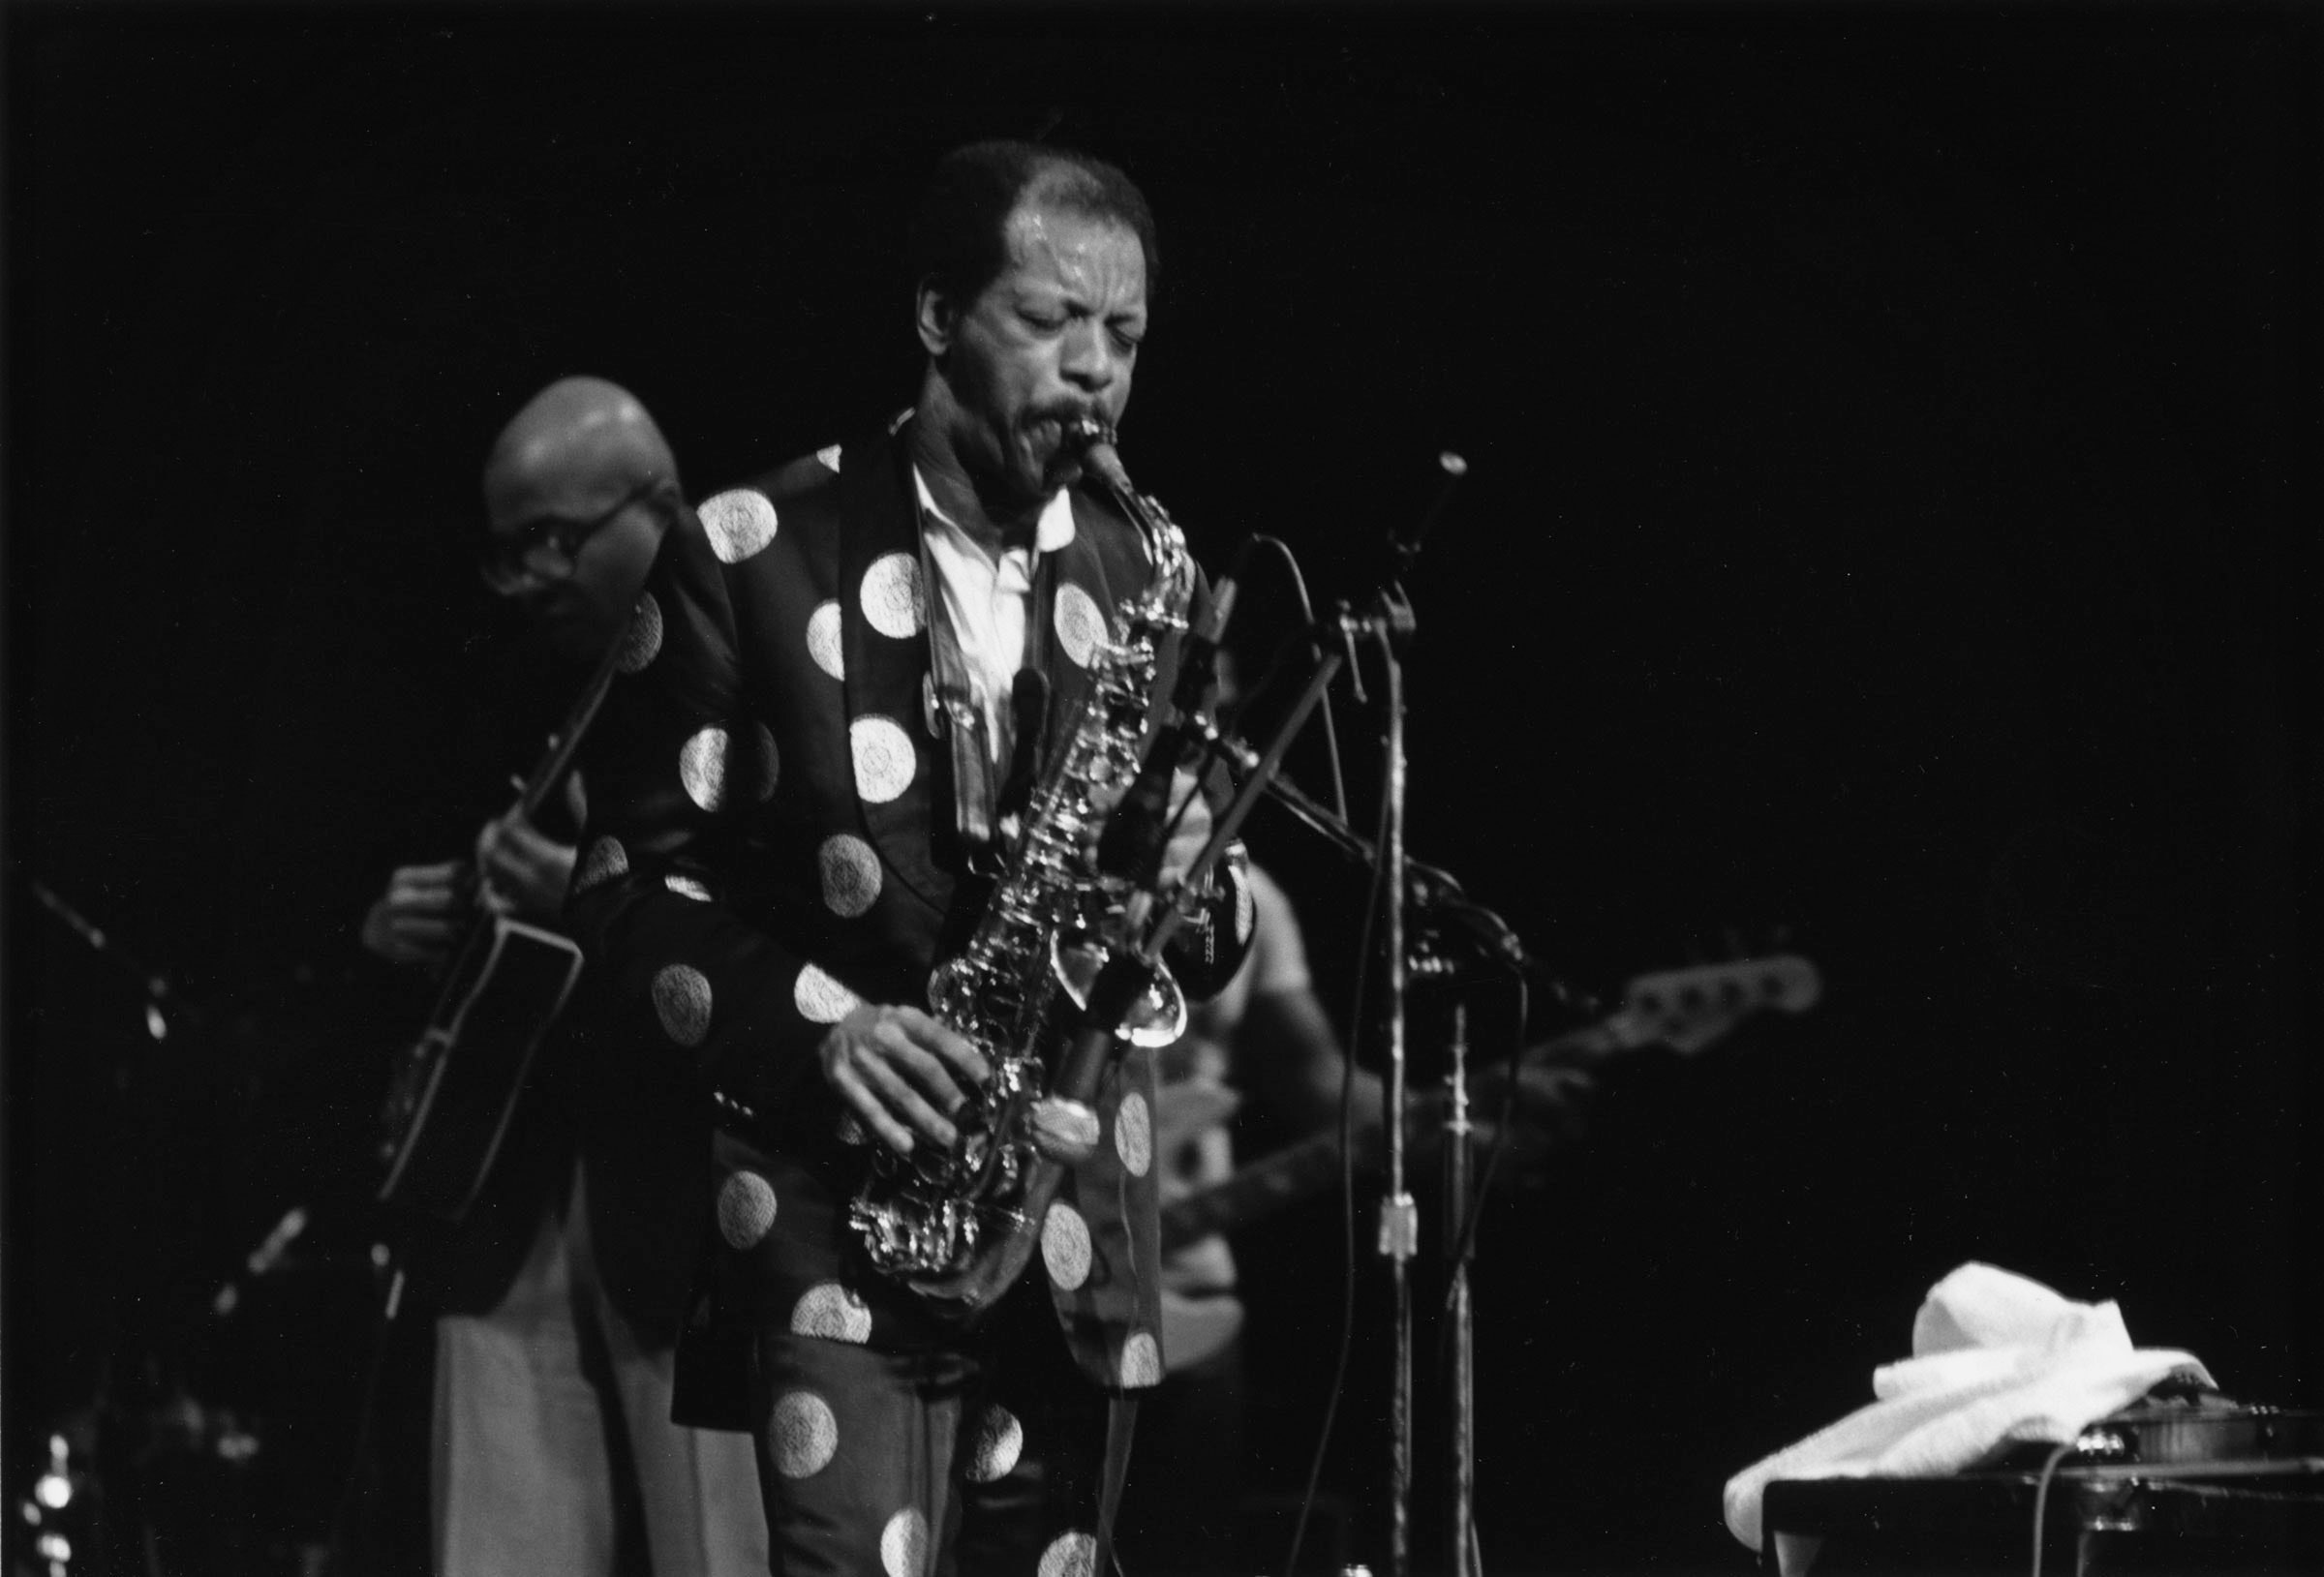 Ornette Coleman on stage in a dotted suite